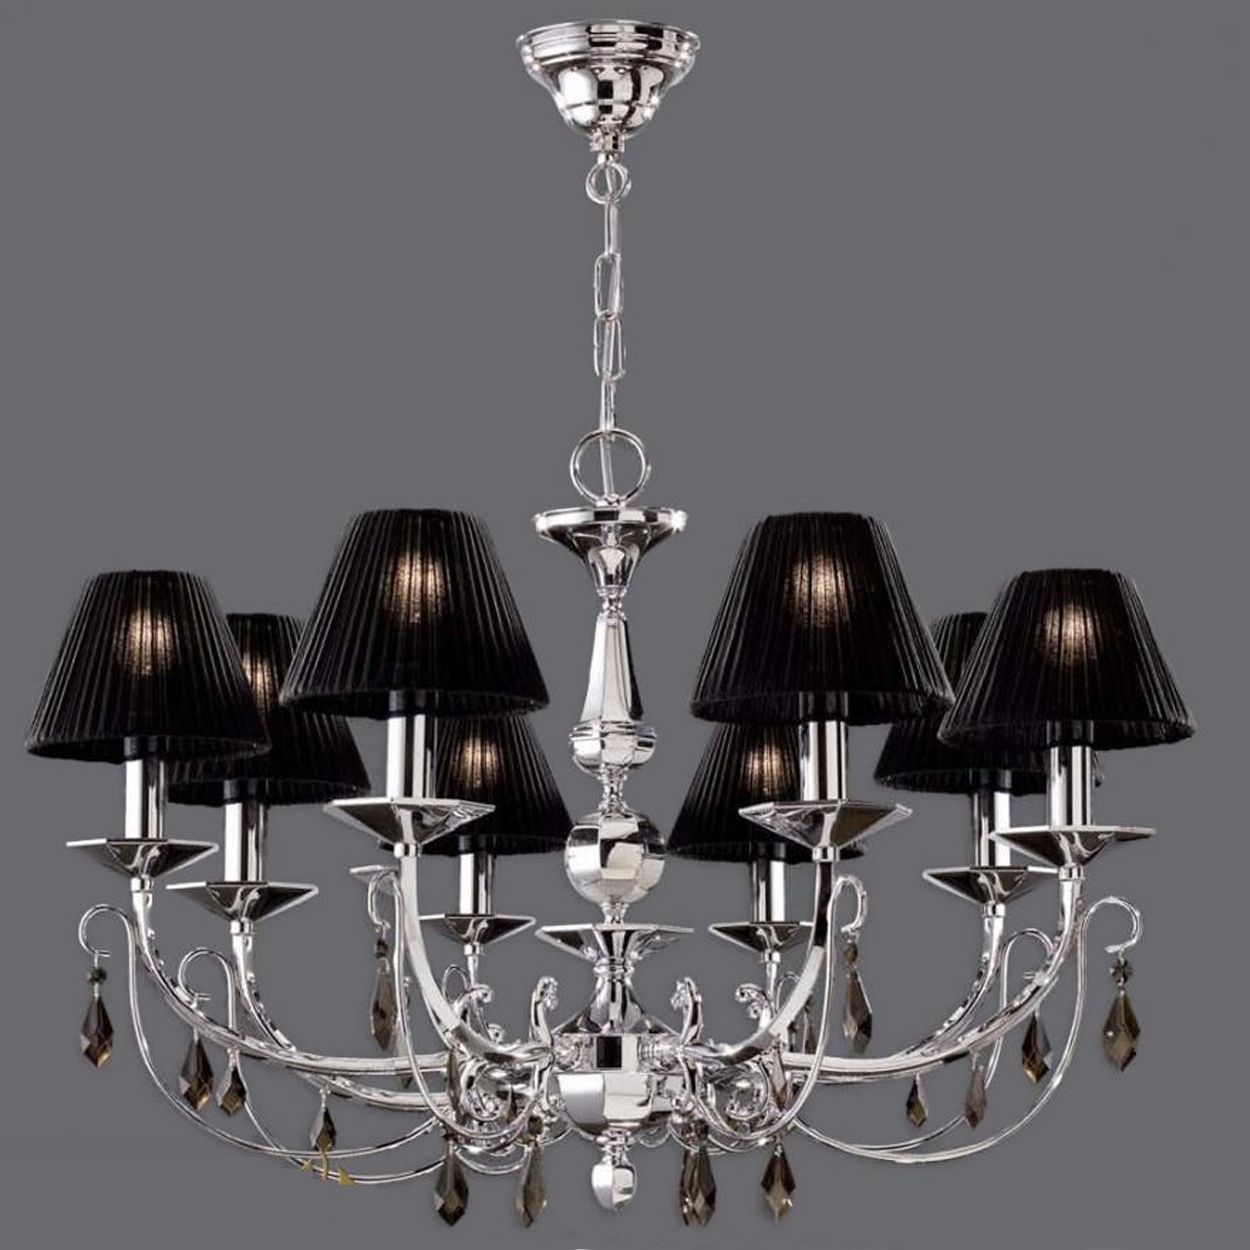 Furniture : Mini Chandelier Lamp Shades 1 Jpg S Pi Pretty 6 Mini Within Preferred Small Chandelier Lamp Shades (View 14 of 20)